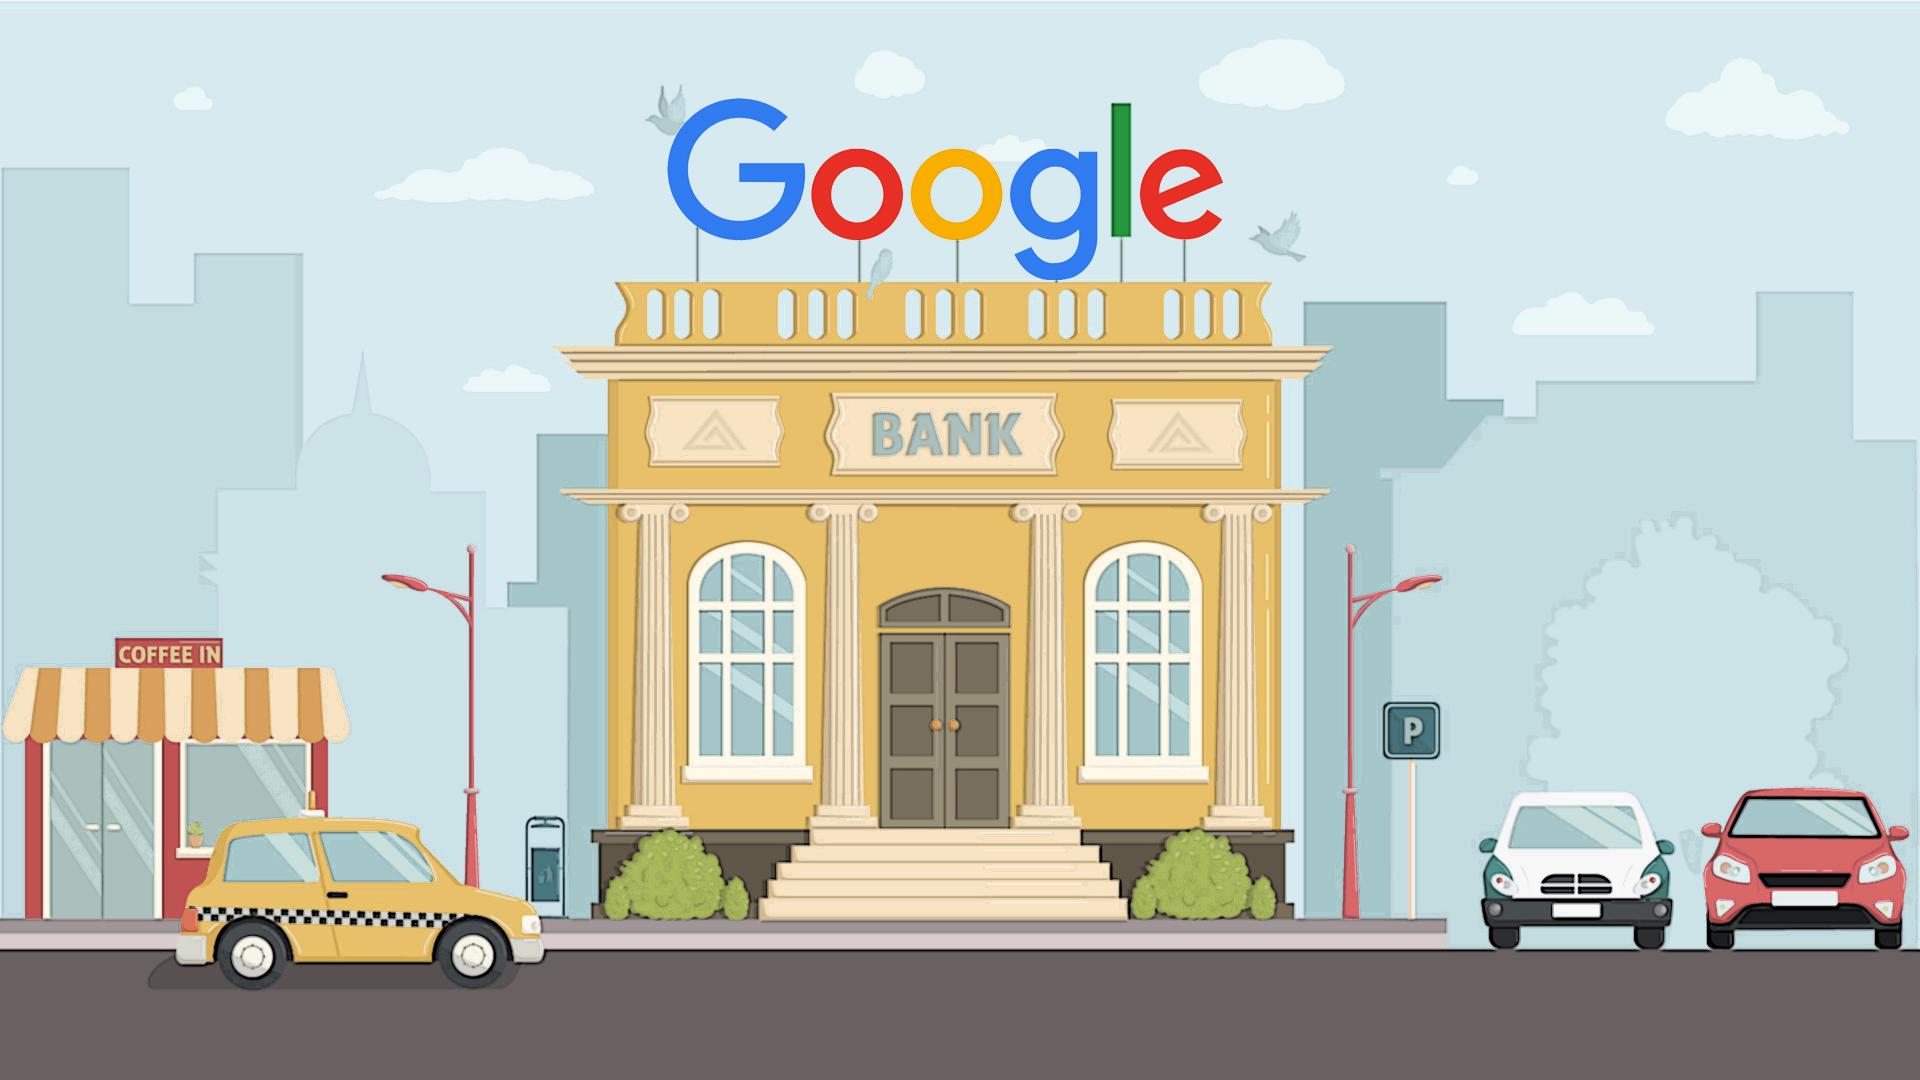 1573917605 997 The Bank of Google Wants Your Spending Data - The Bank of Google Wants Your Spending Data